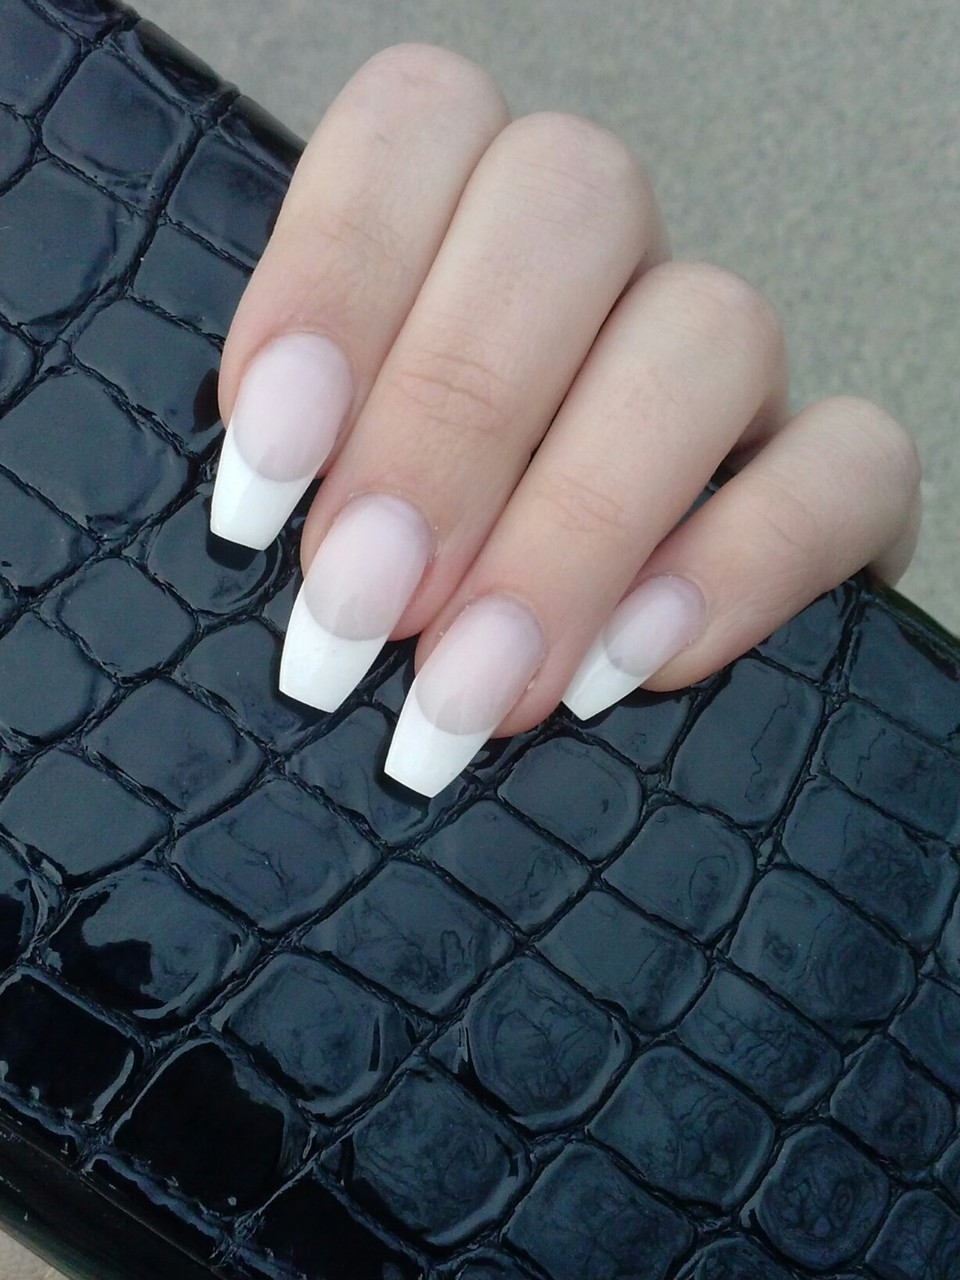 French nails shared by heartsoflana on We Heart It